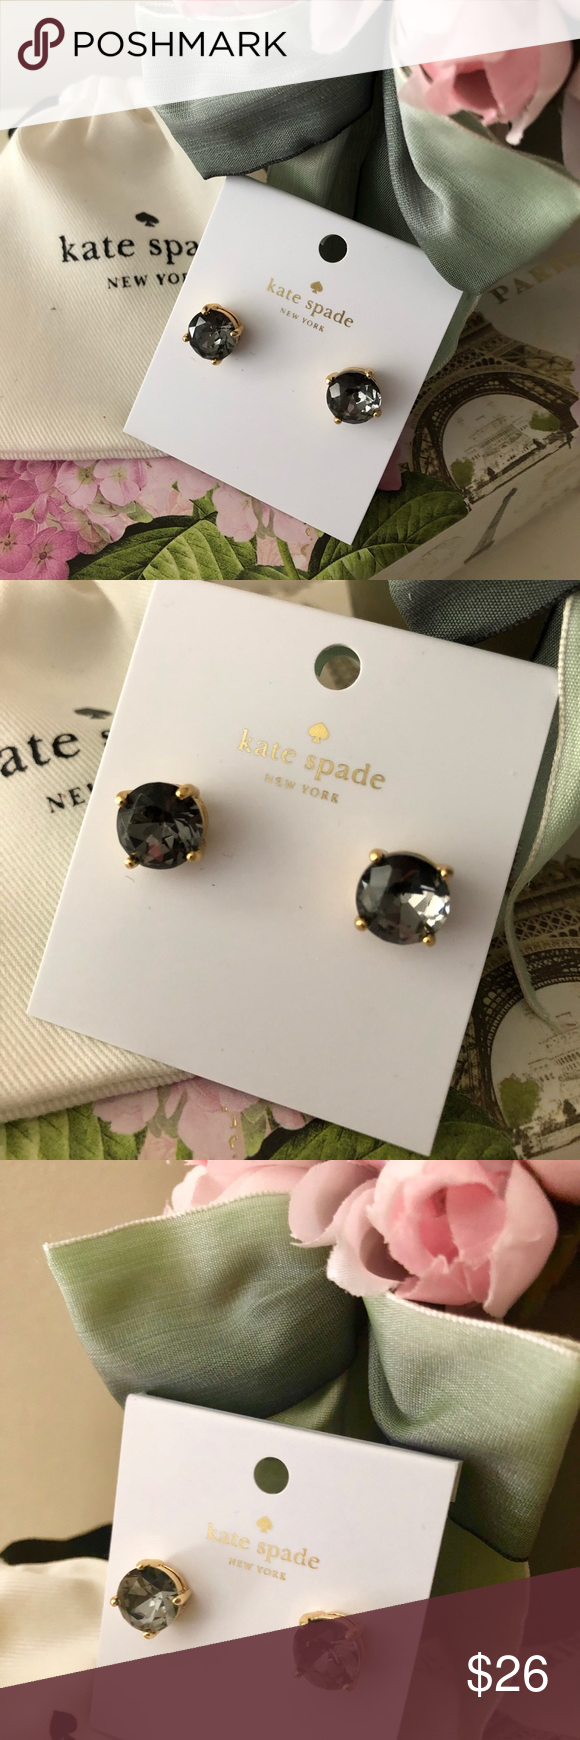 Kate Spade ♠️ Black Diamond Gumdrop Earrings NWT Kate